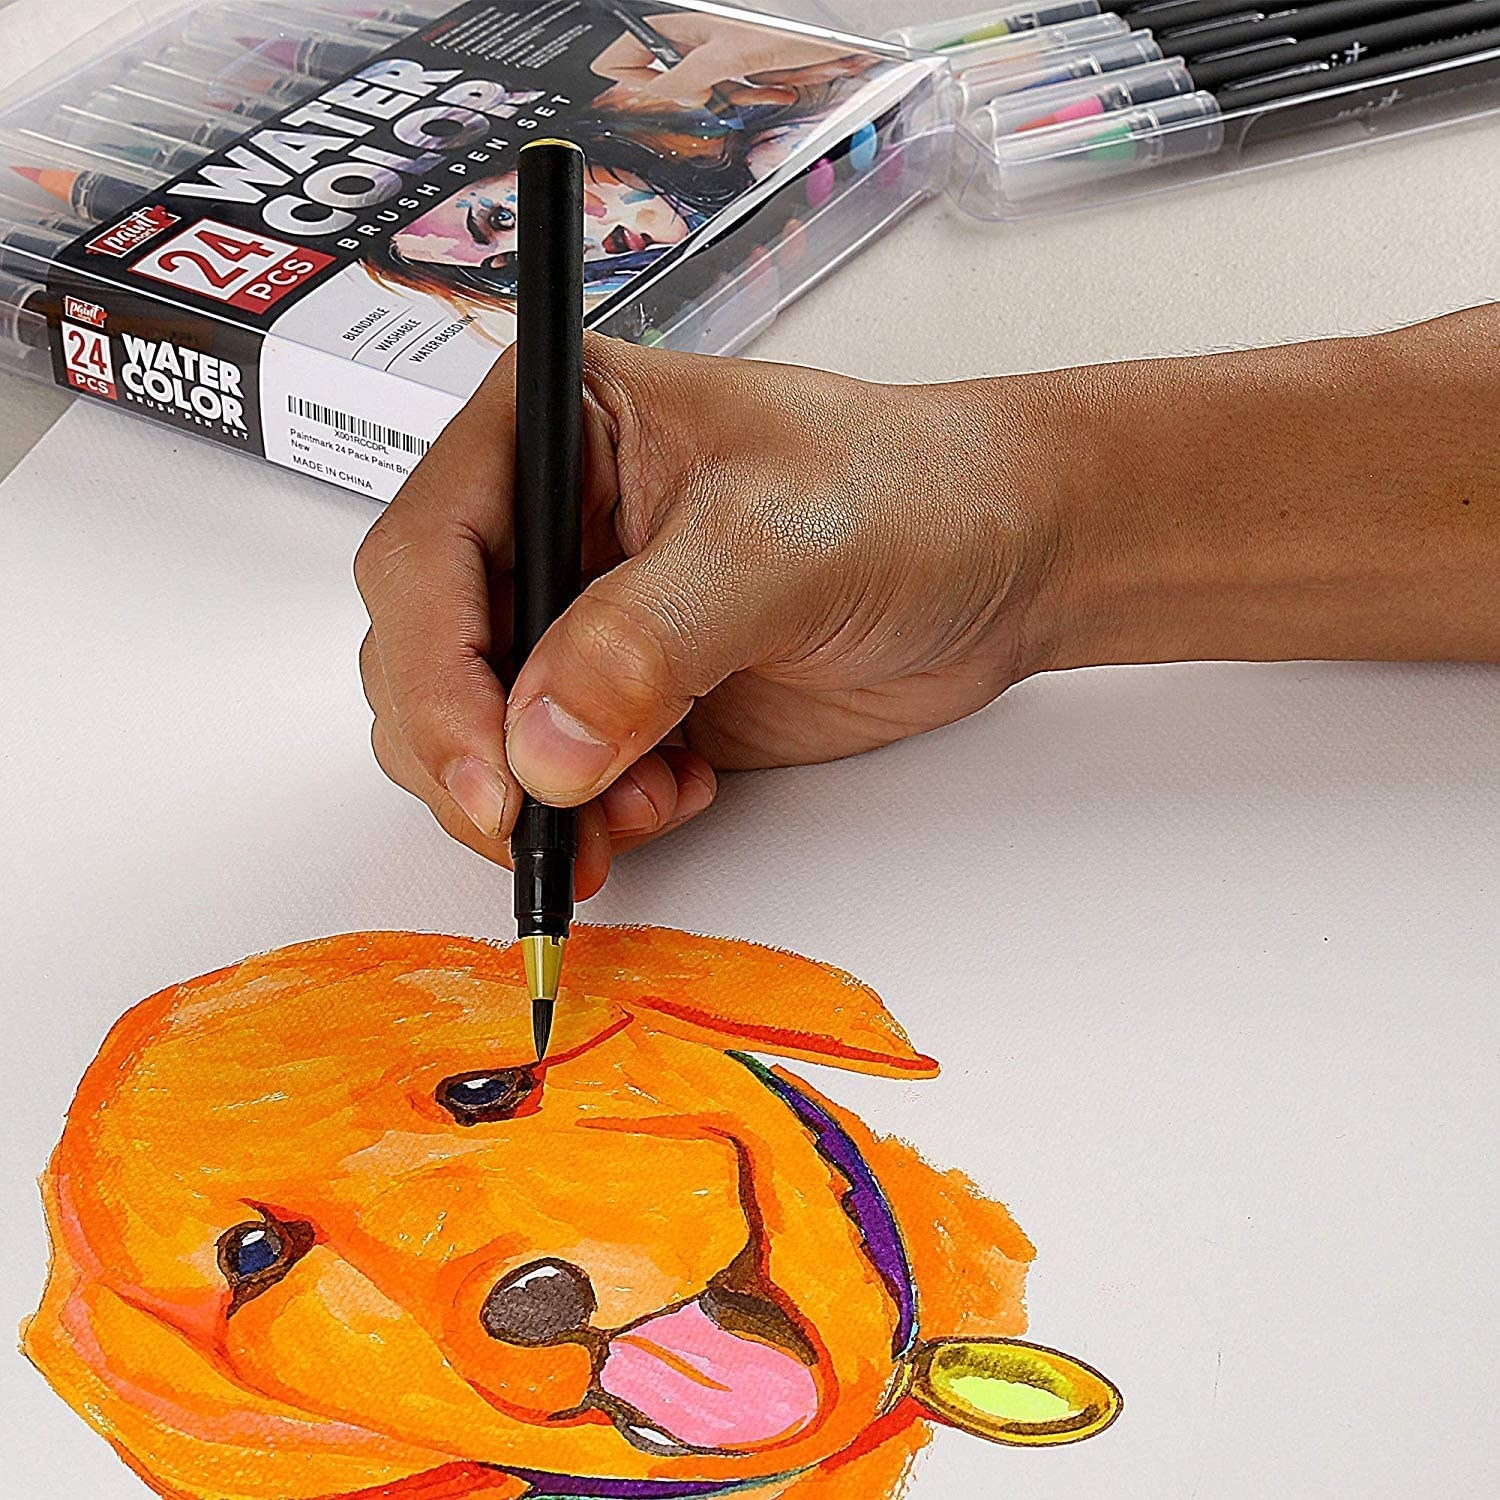 person drawing a dog with the watercolour pens